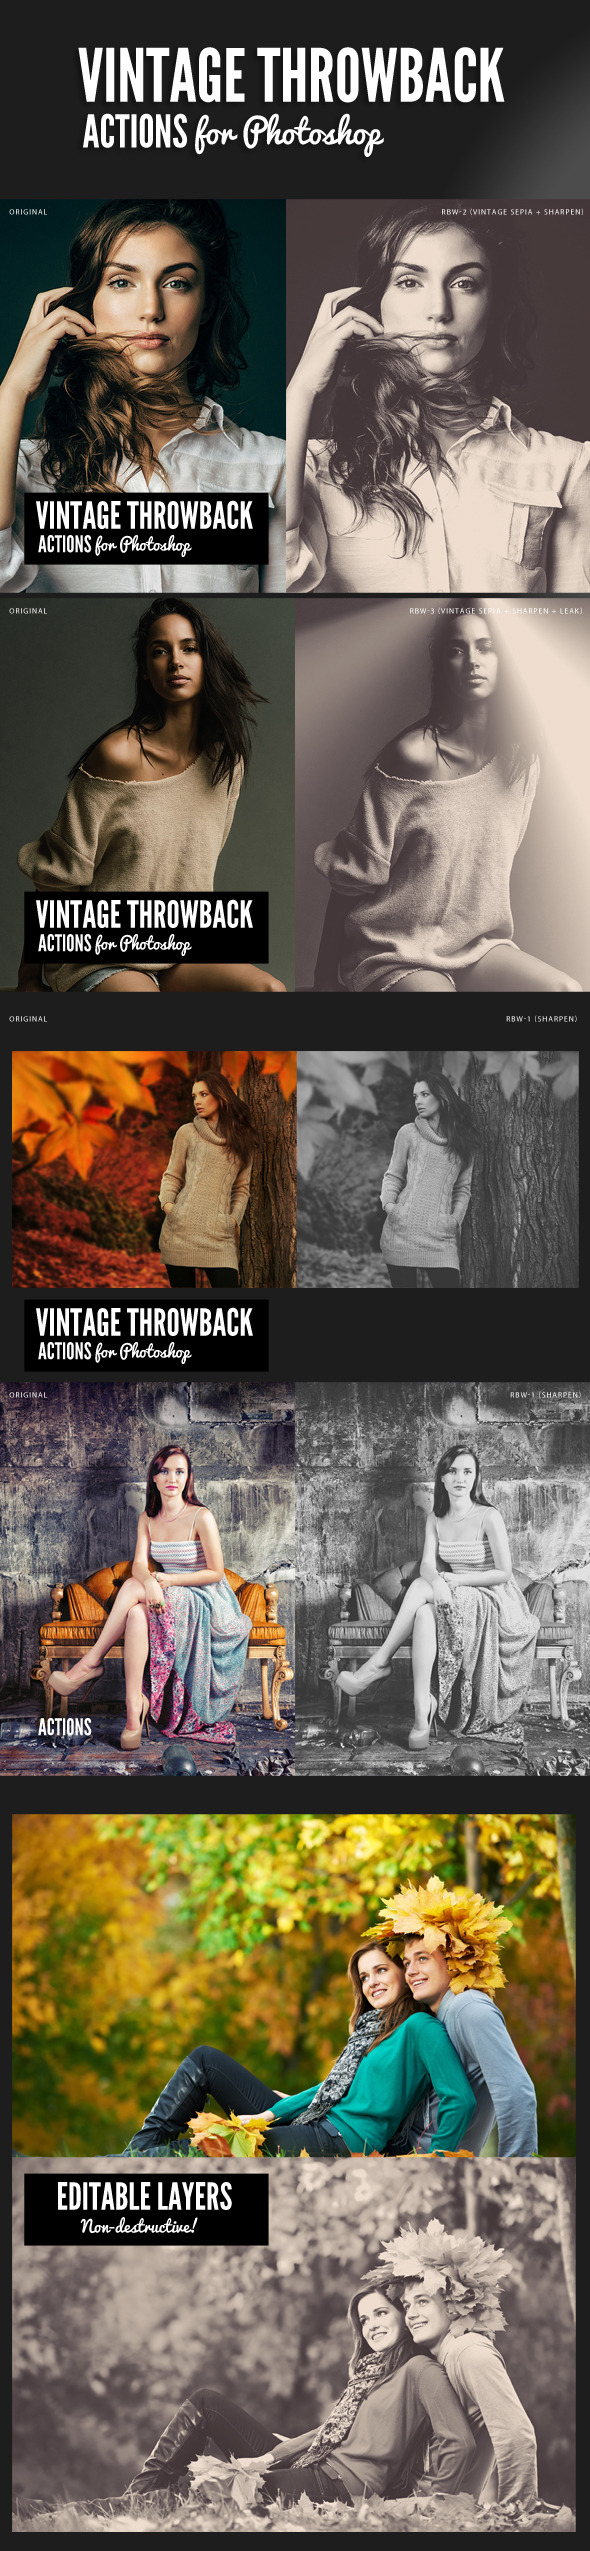 vintage_throwback_actions